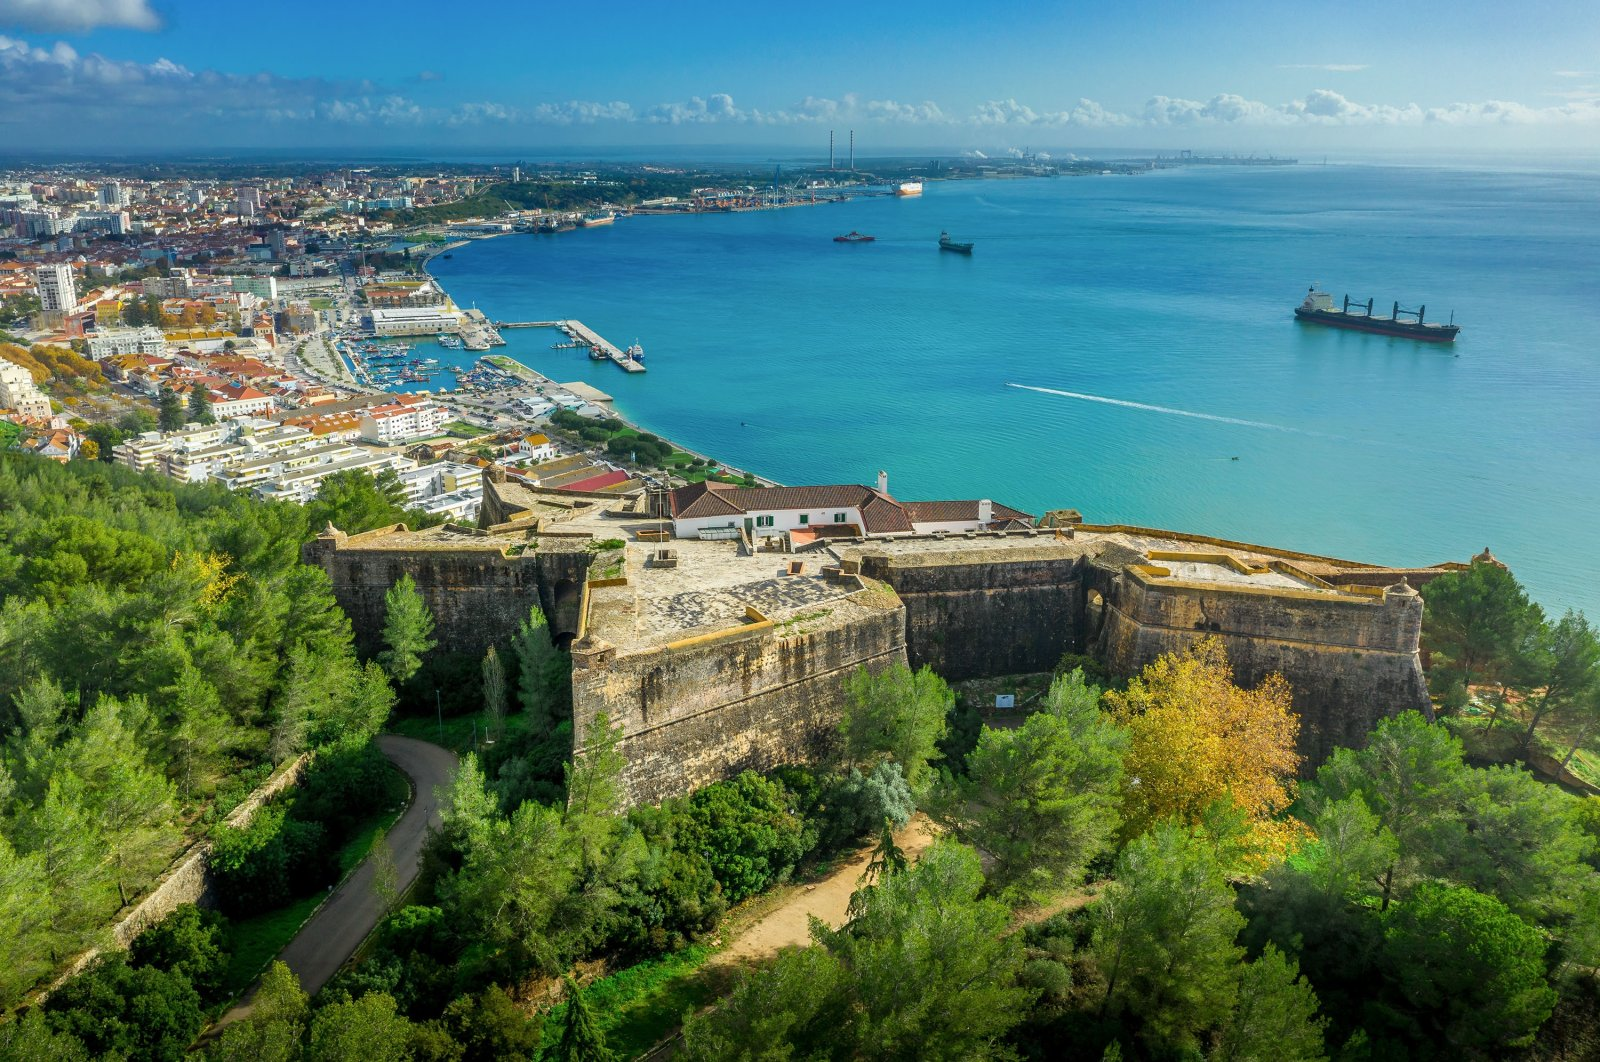 An aerial view shows the star shaped fortress Sao Felipe, a historical military base protecting the city and the harbor, in Setubal, Portugal. (Shutterstock Photo)